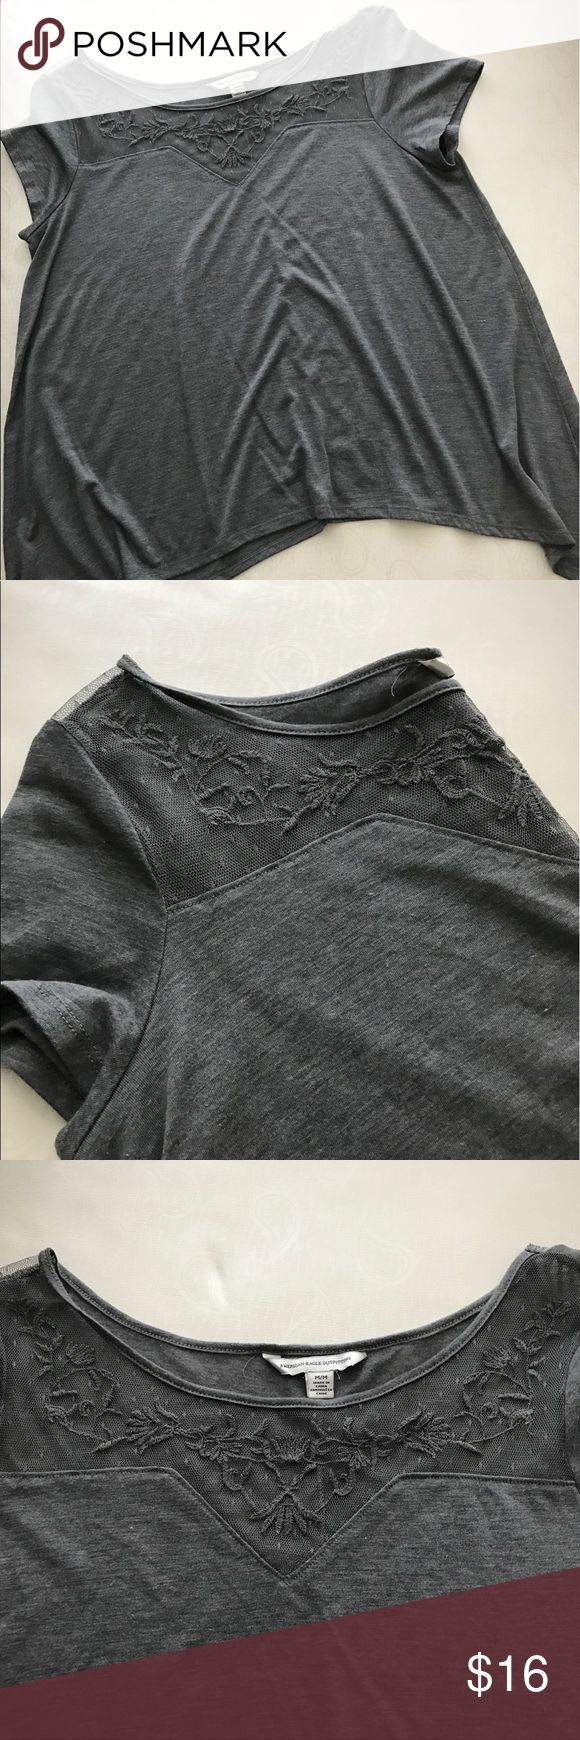 🔴SALE🔴AE Outfitters Gray asymmetrical top🖤 American Eagle Outfitters gray cap sleeve asymmetrical top with lace panel.  Flirty little cap sleeve top with sweet lace details. Long on the sides adds to its character Only worn once! In perfect condition ✨ American Eagle Outfitters Tops